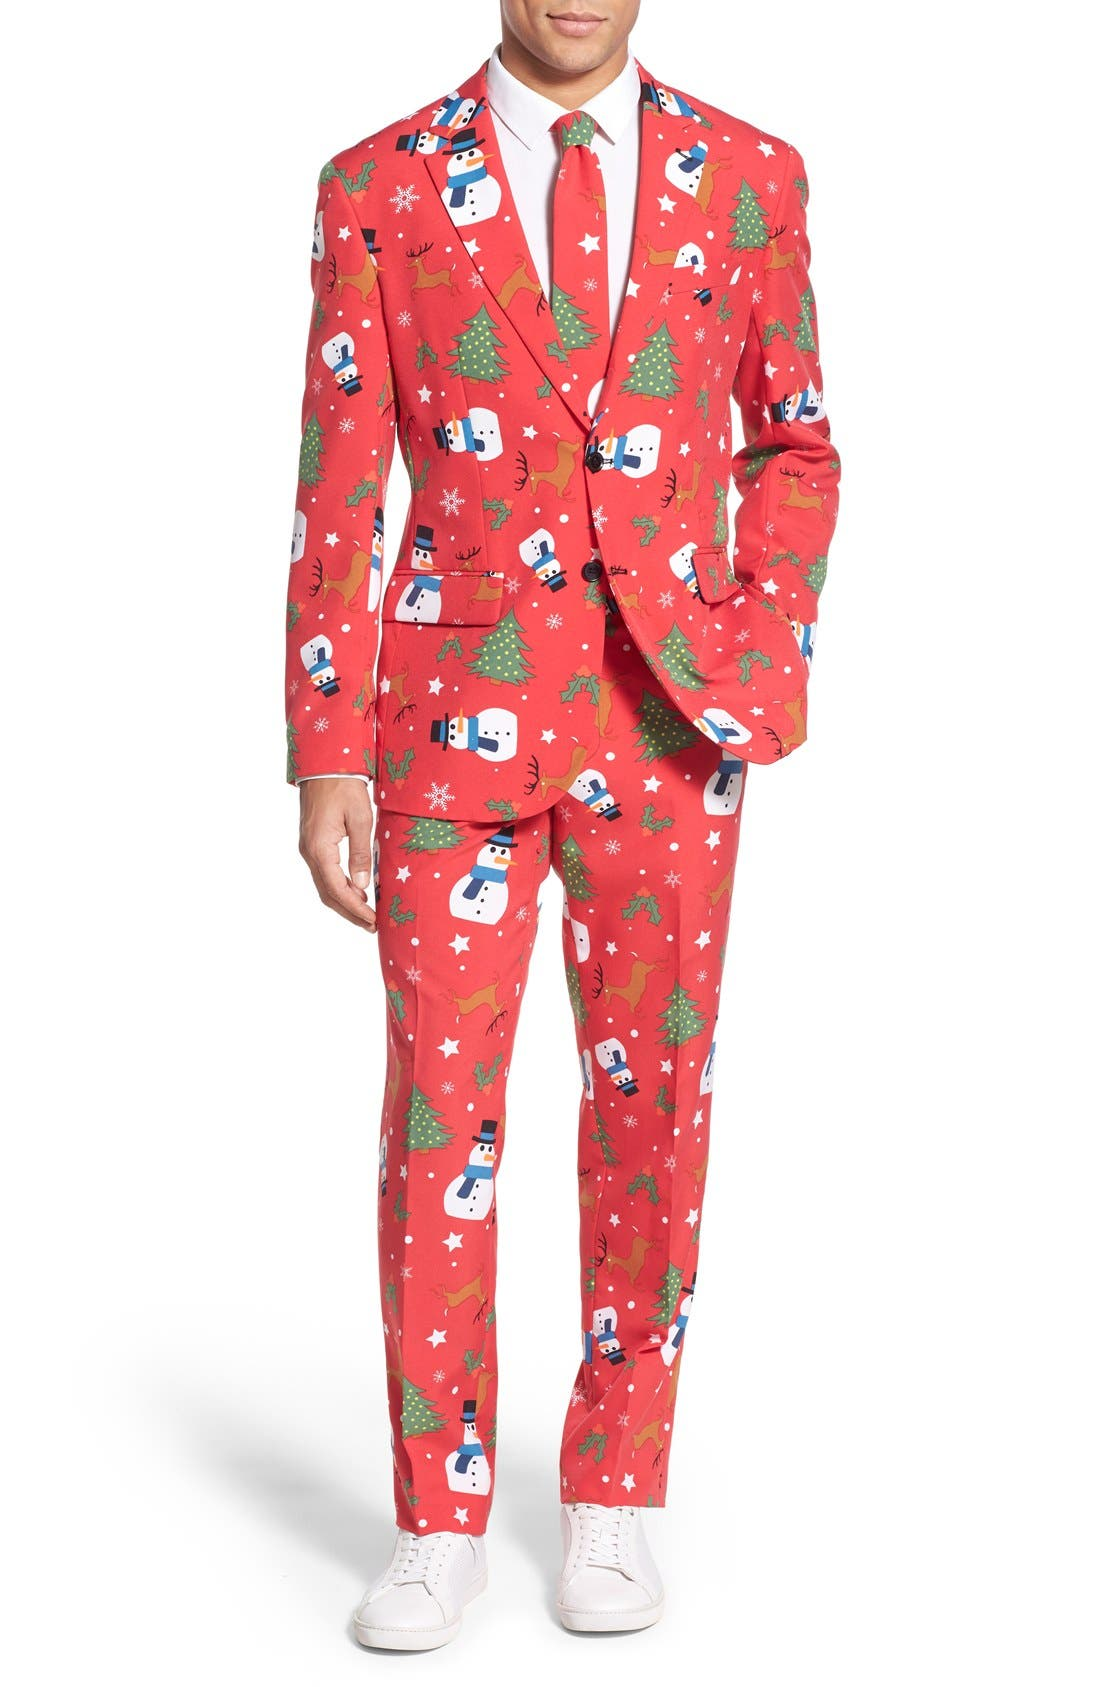 'Christmaster' Holiday Suit & Tie,                             Main thumbnail 1, color,                             600